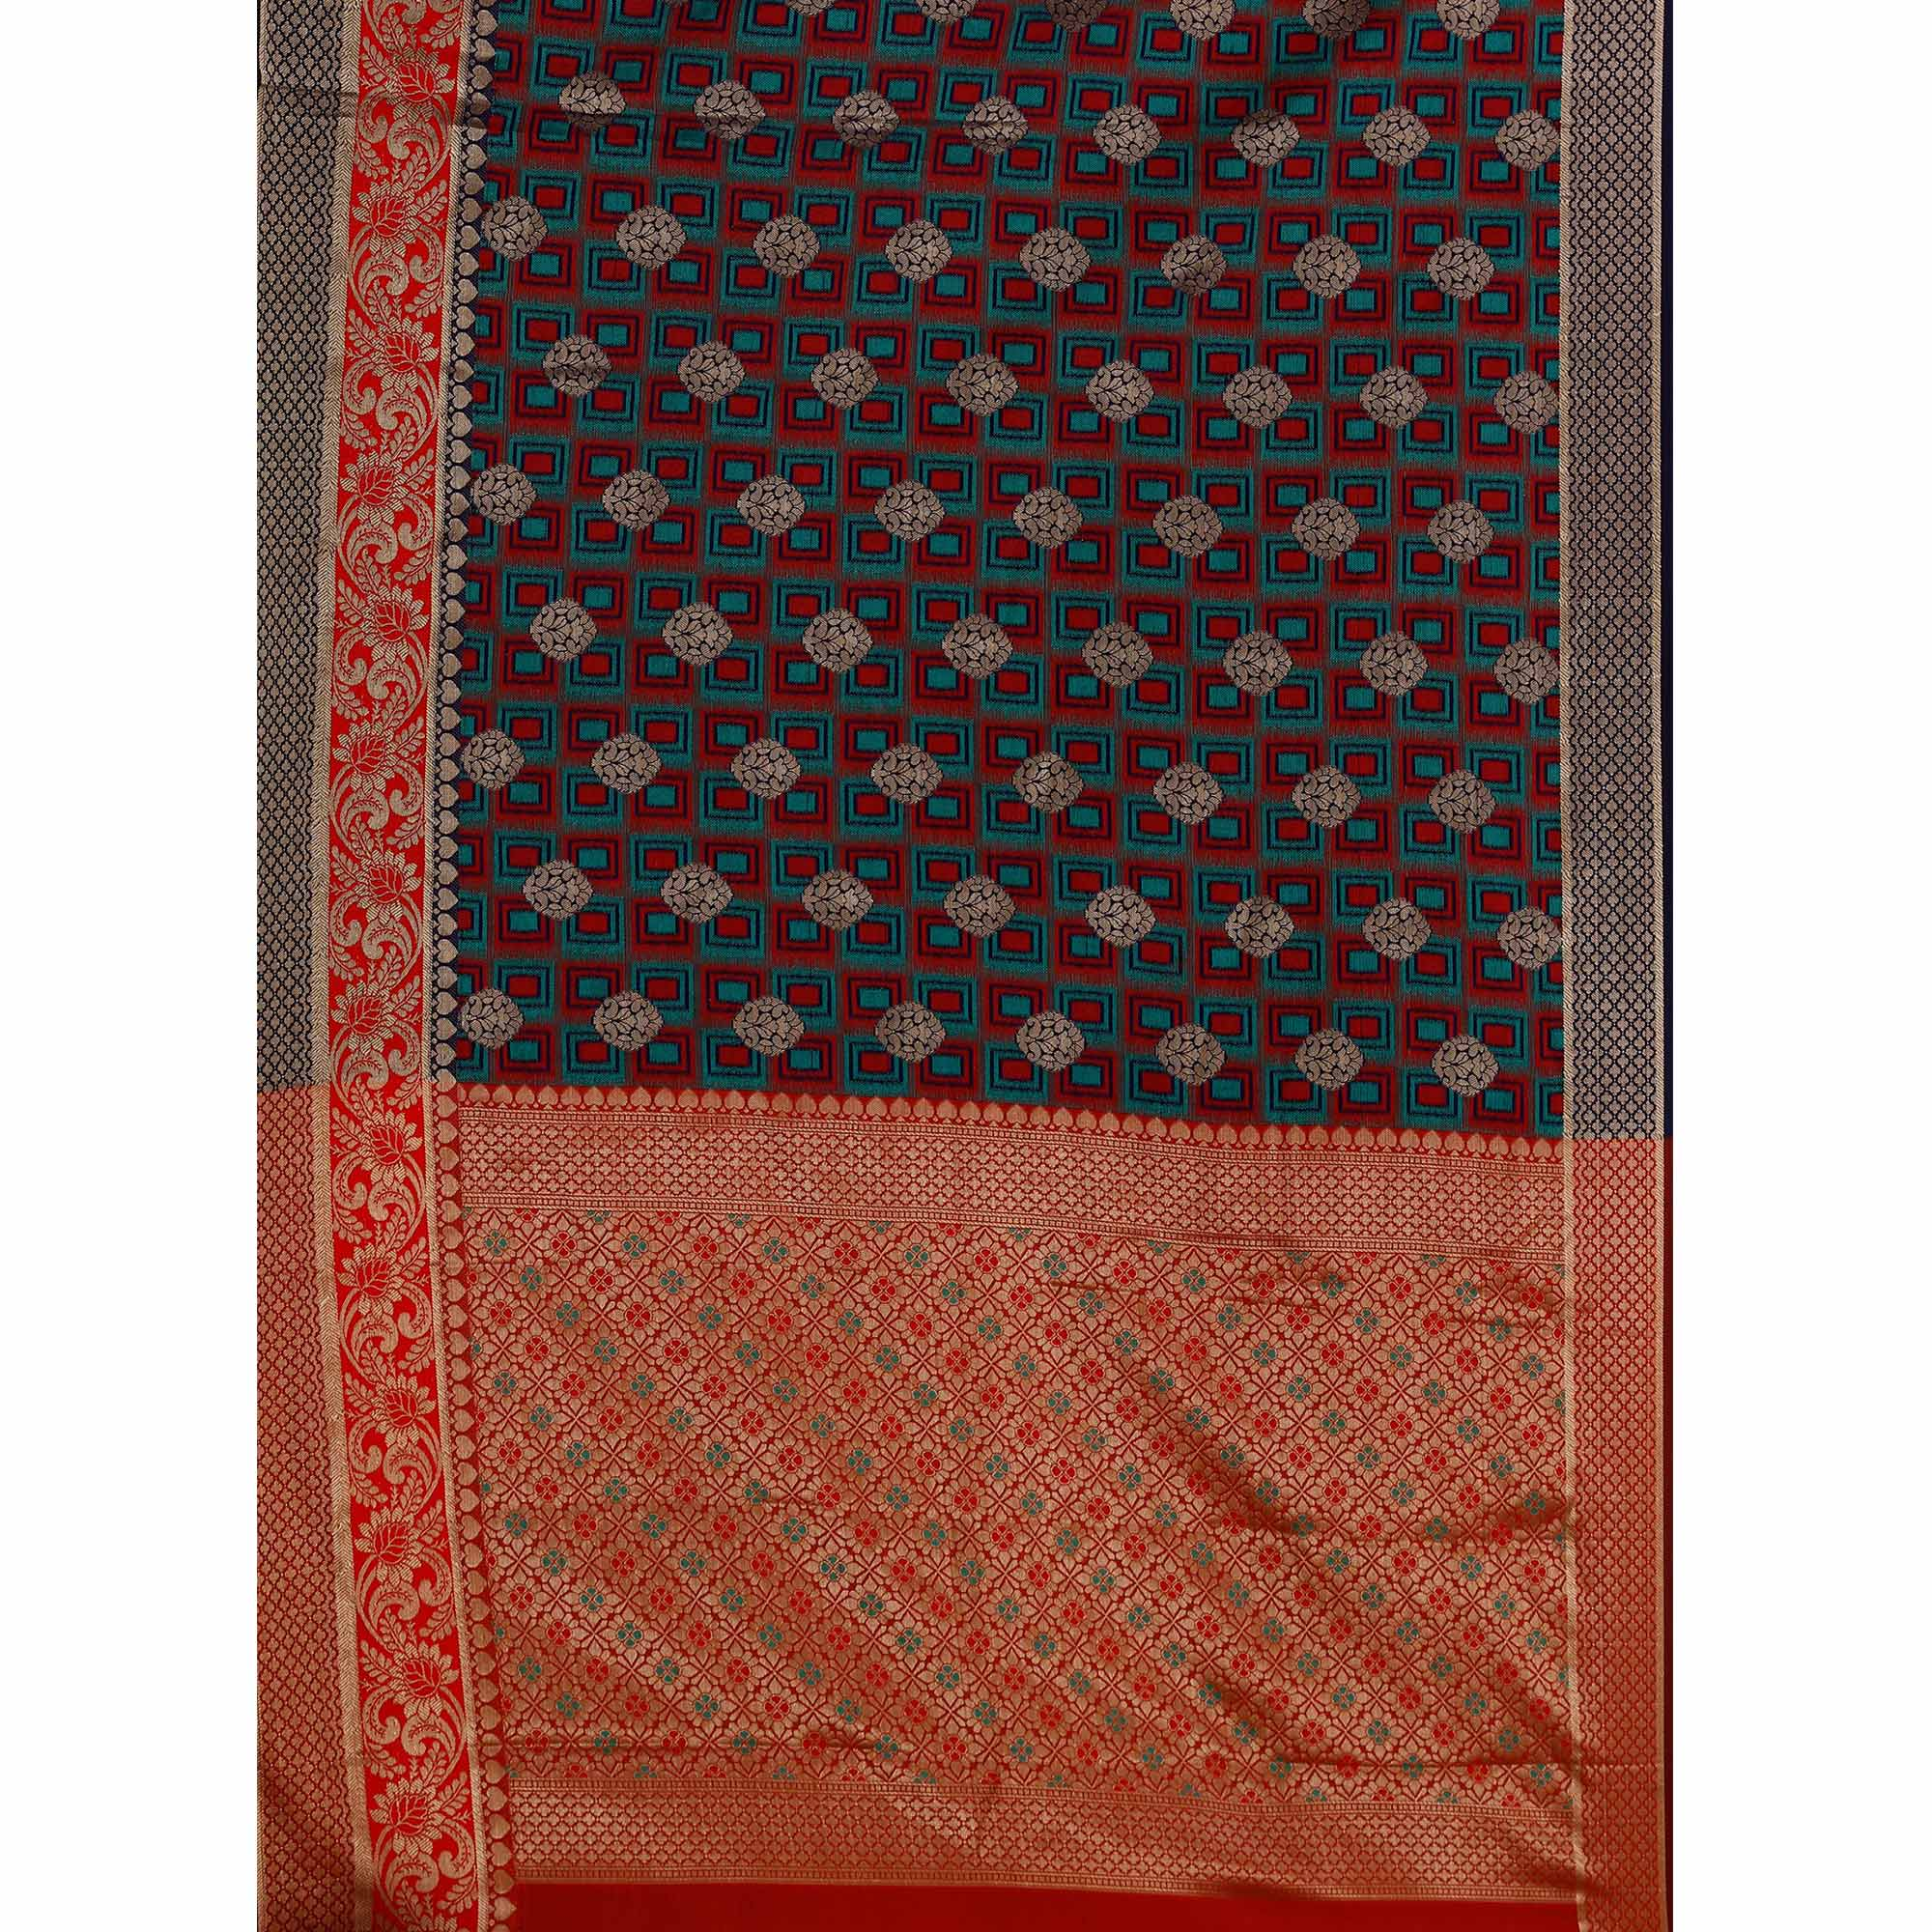 Glowing Navy Blue-Red Colored Festive Wear Woven Cotton Silk Jacquard Saree